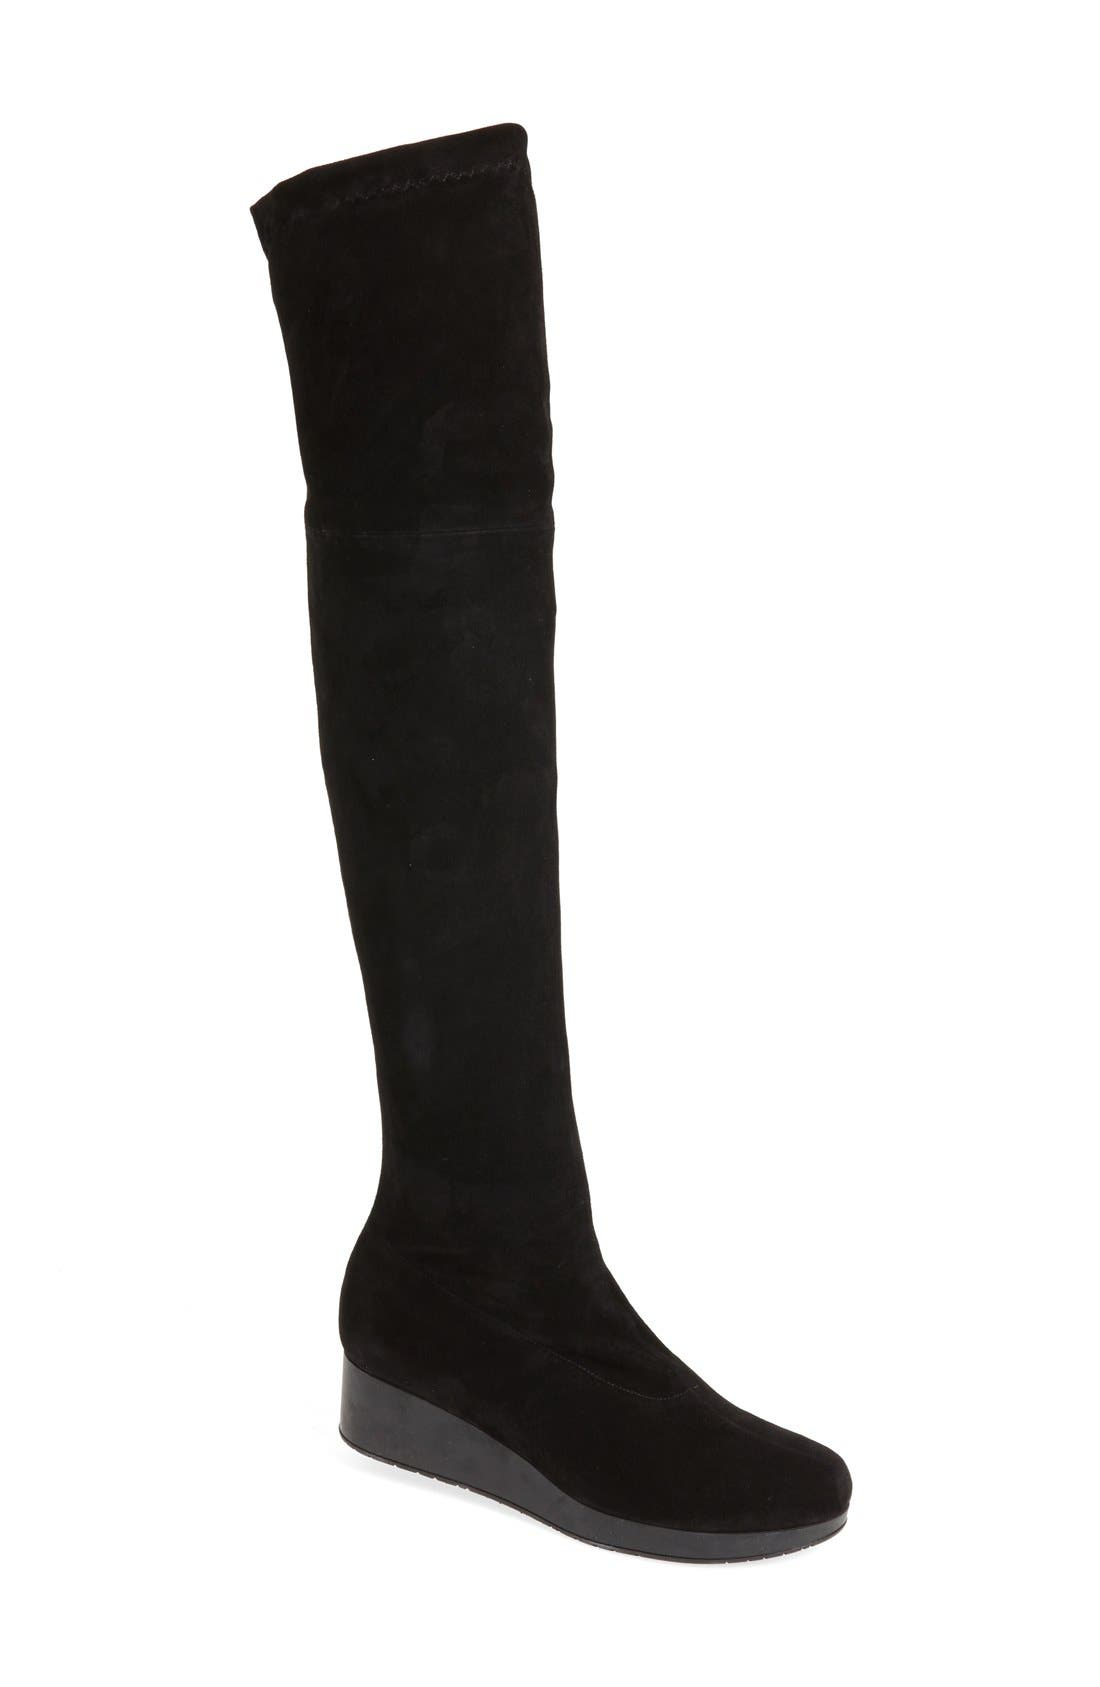 Main Image - Robert Clergerie Wedge Over the Knee Boot (Women)